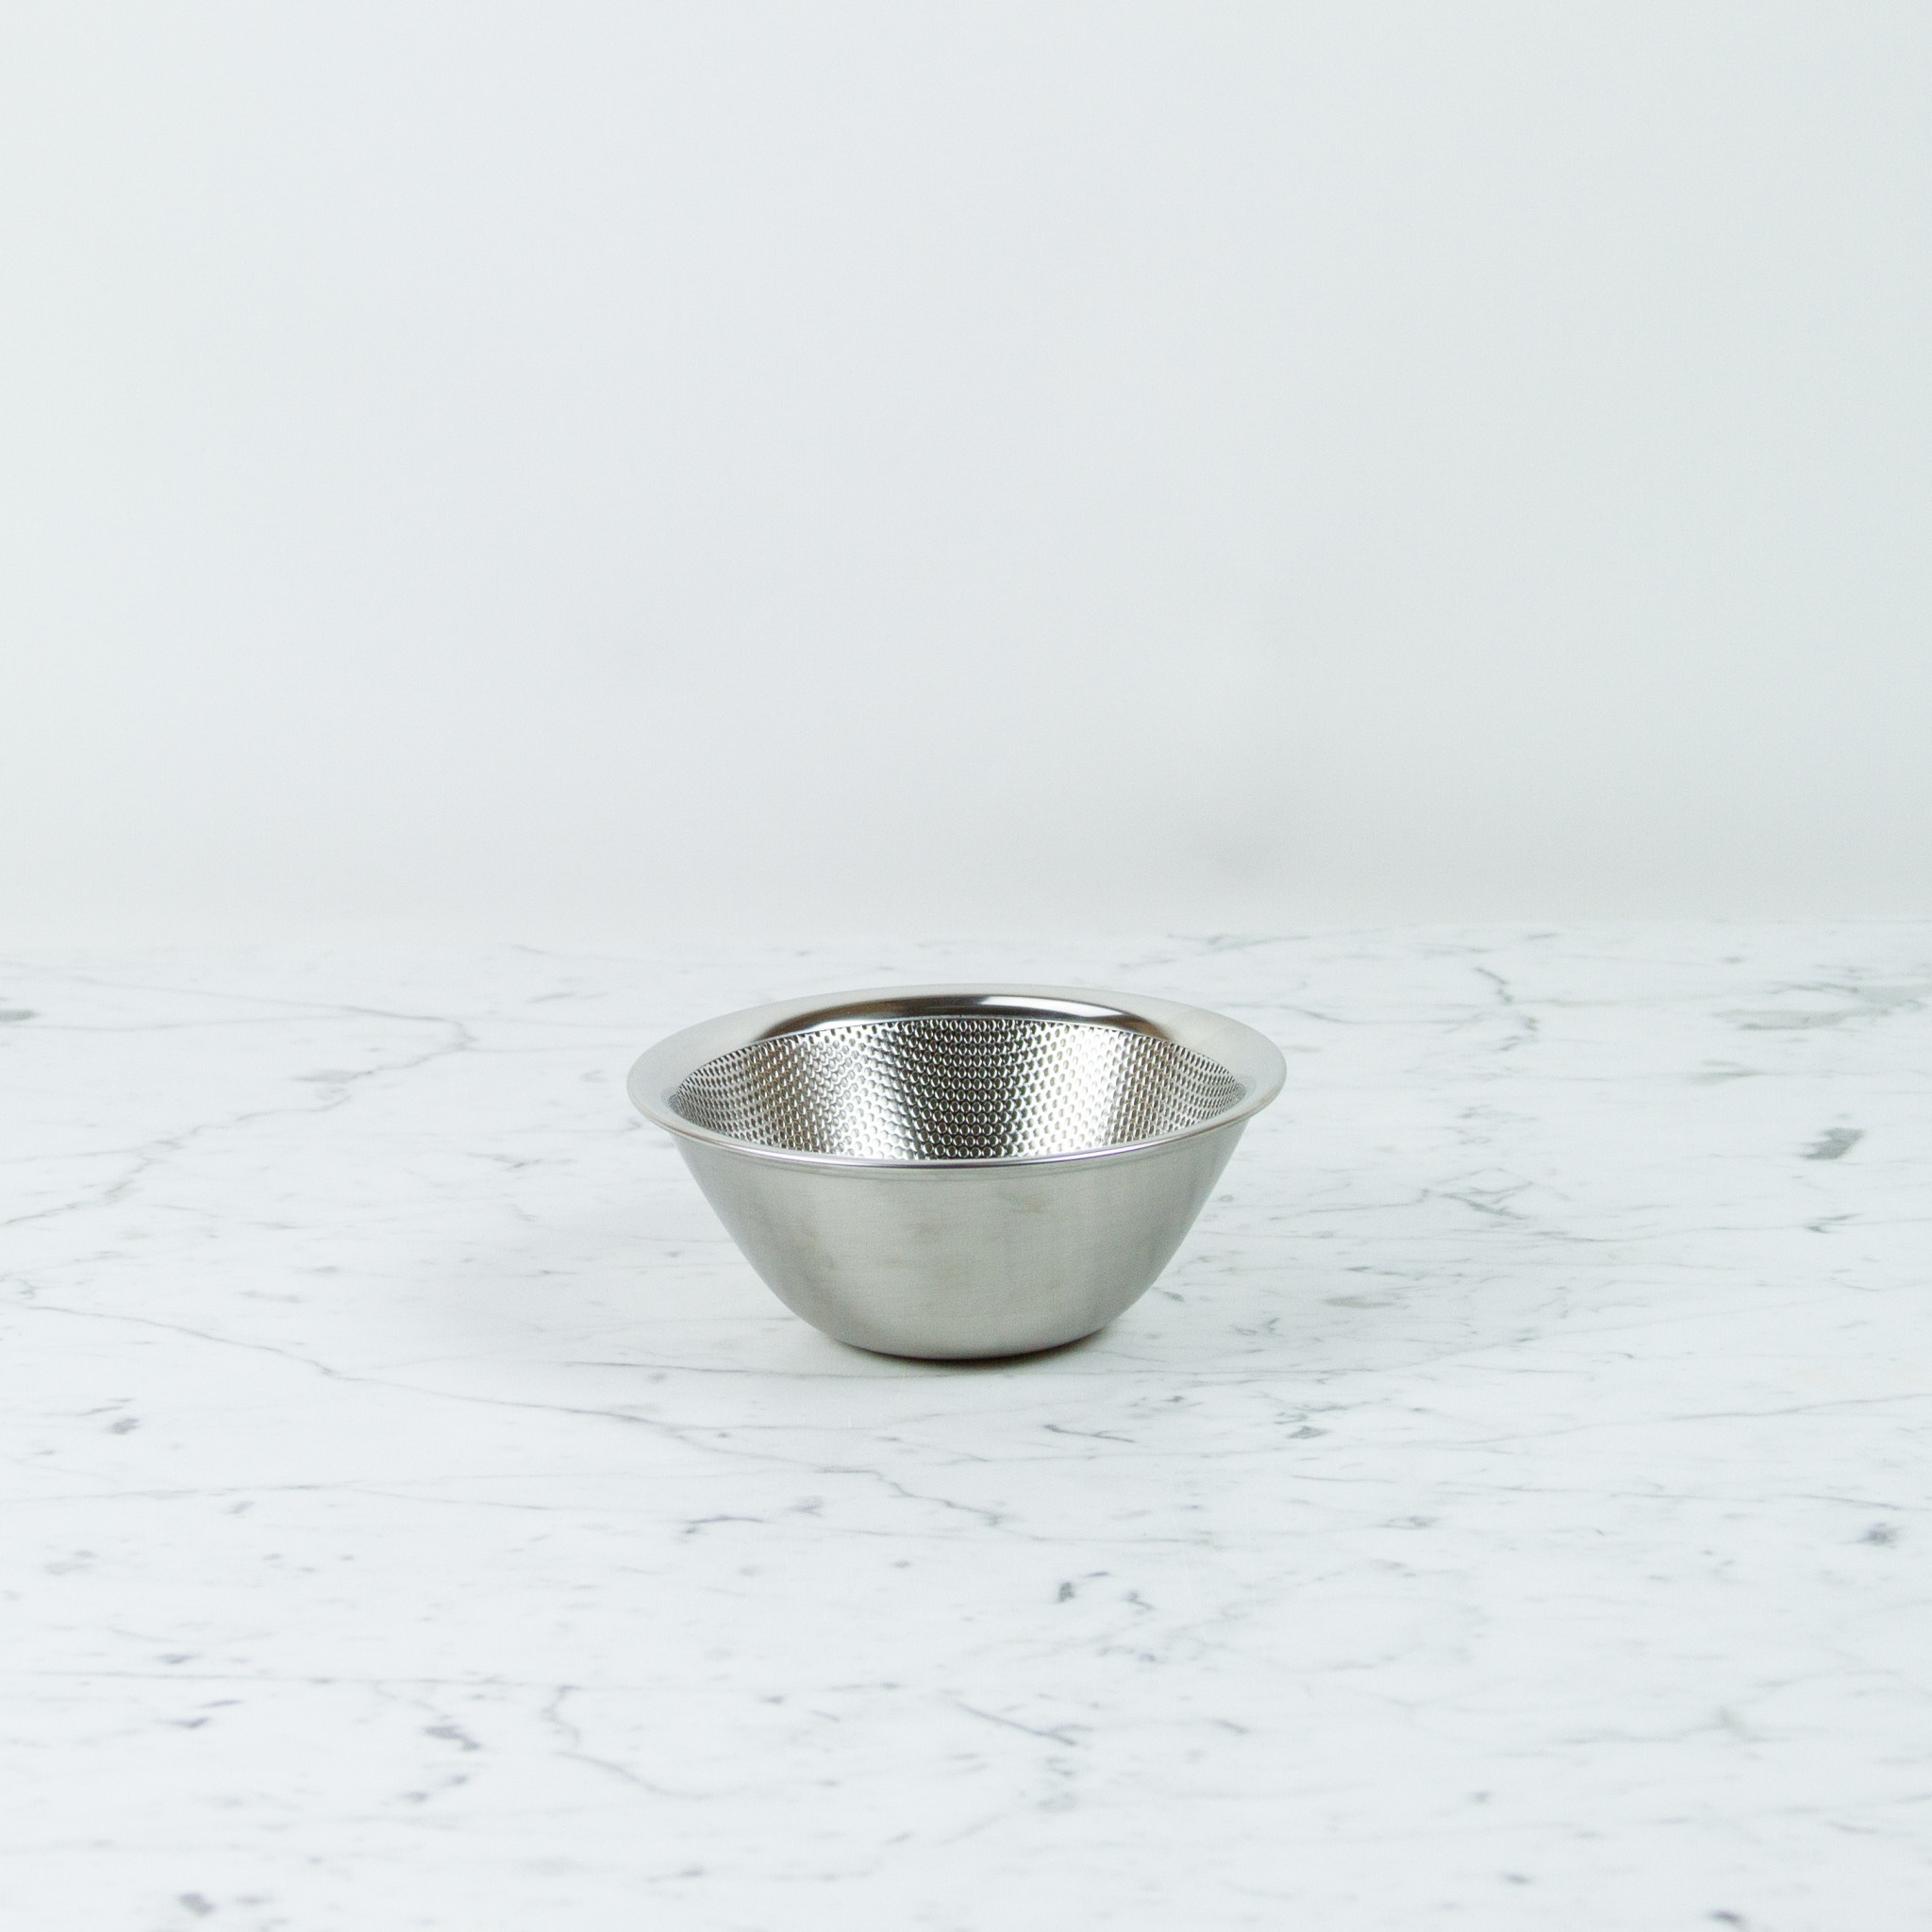 """Japanese Stainless Steel Punch Pressed Strainer - 6.5"""""""